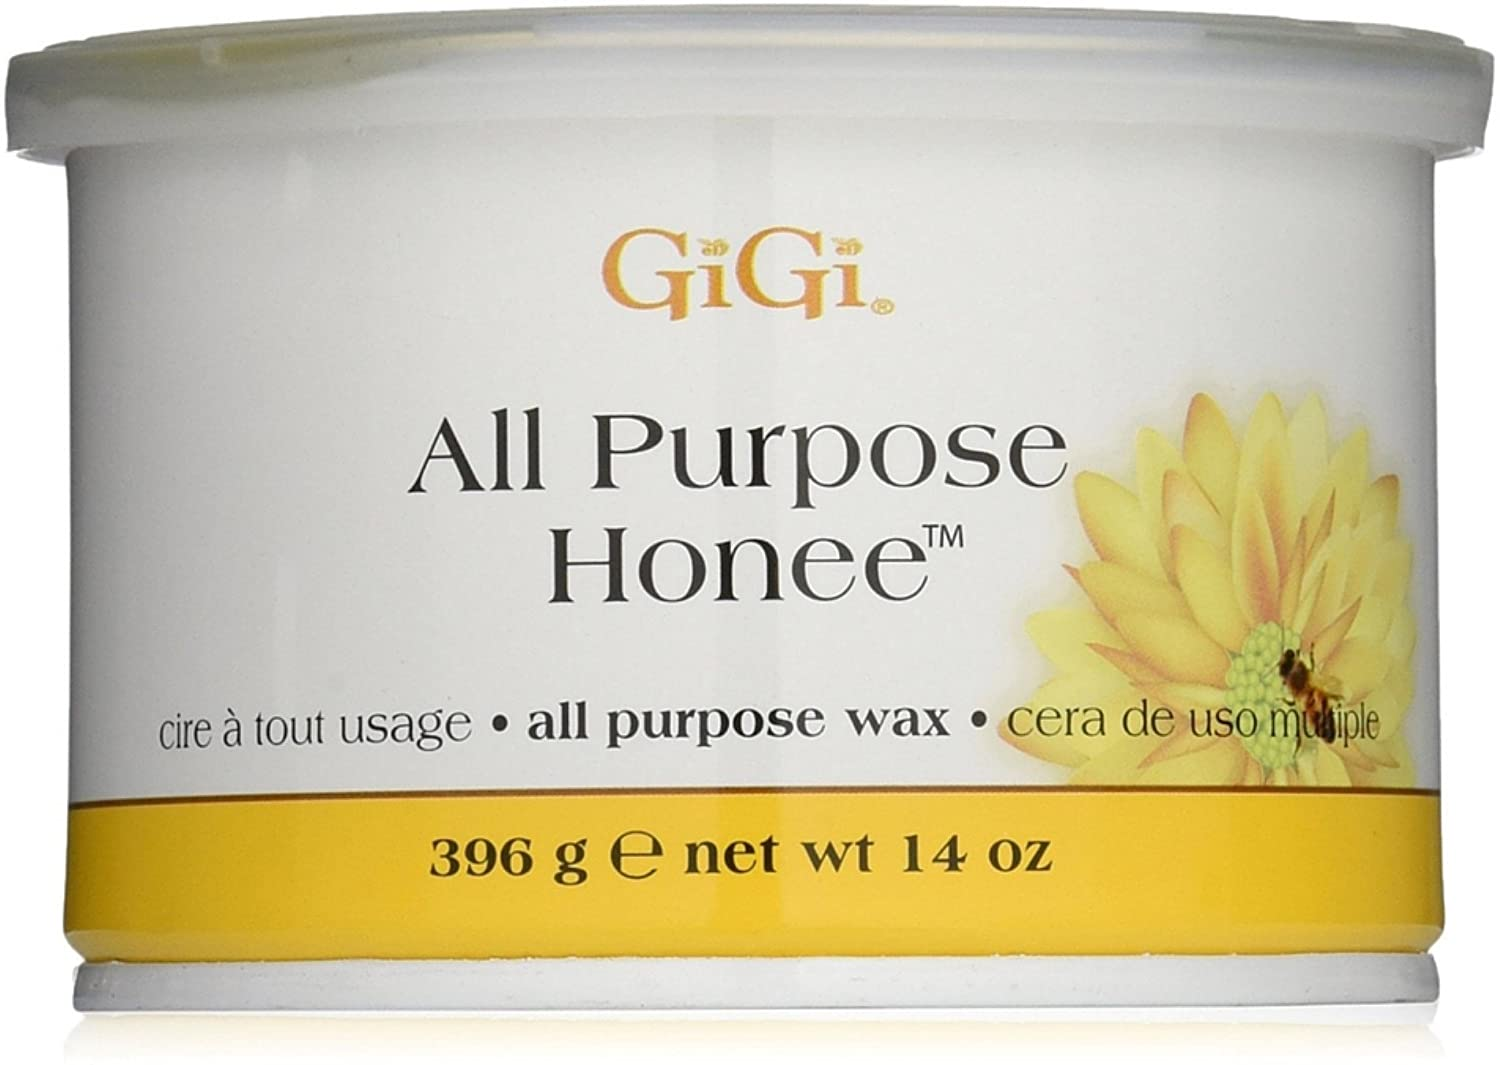 GiGi All Purpose Wax - Honee 415 ml (Pack of 4)